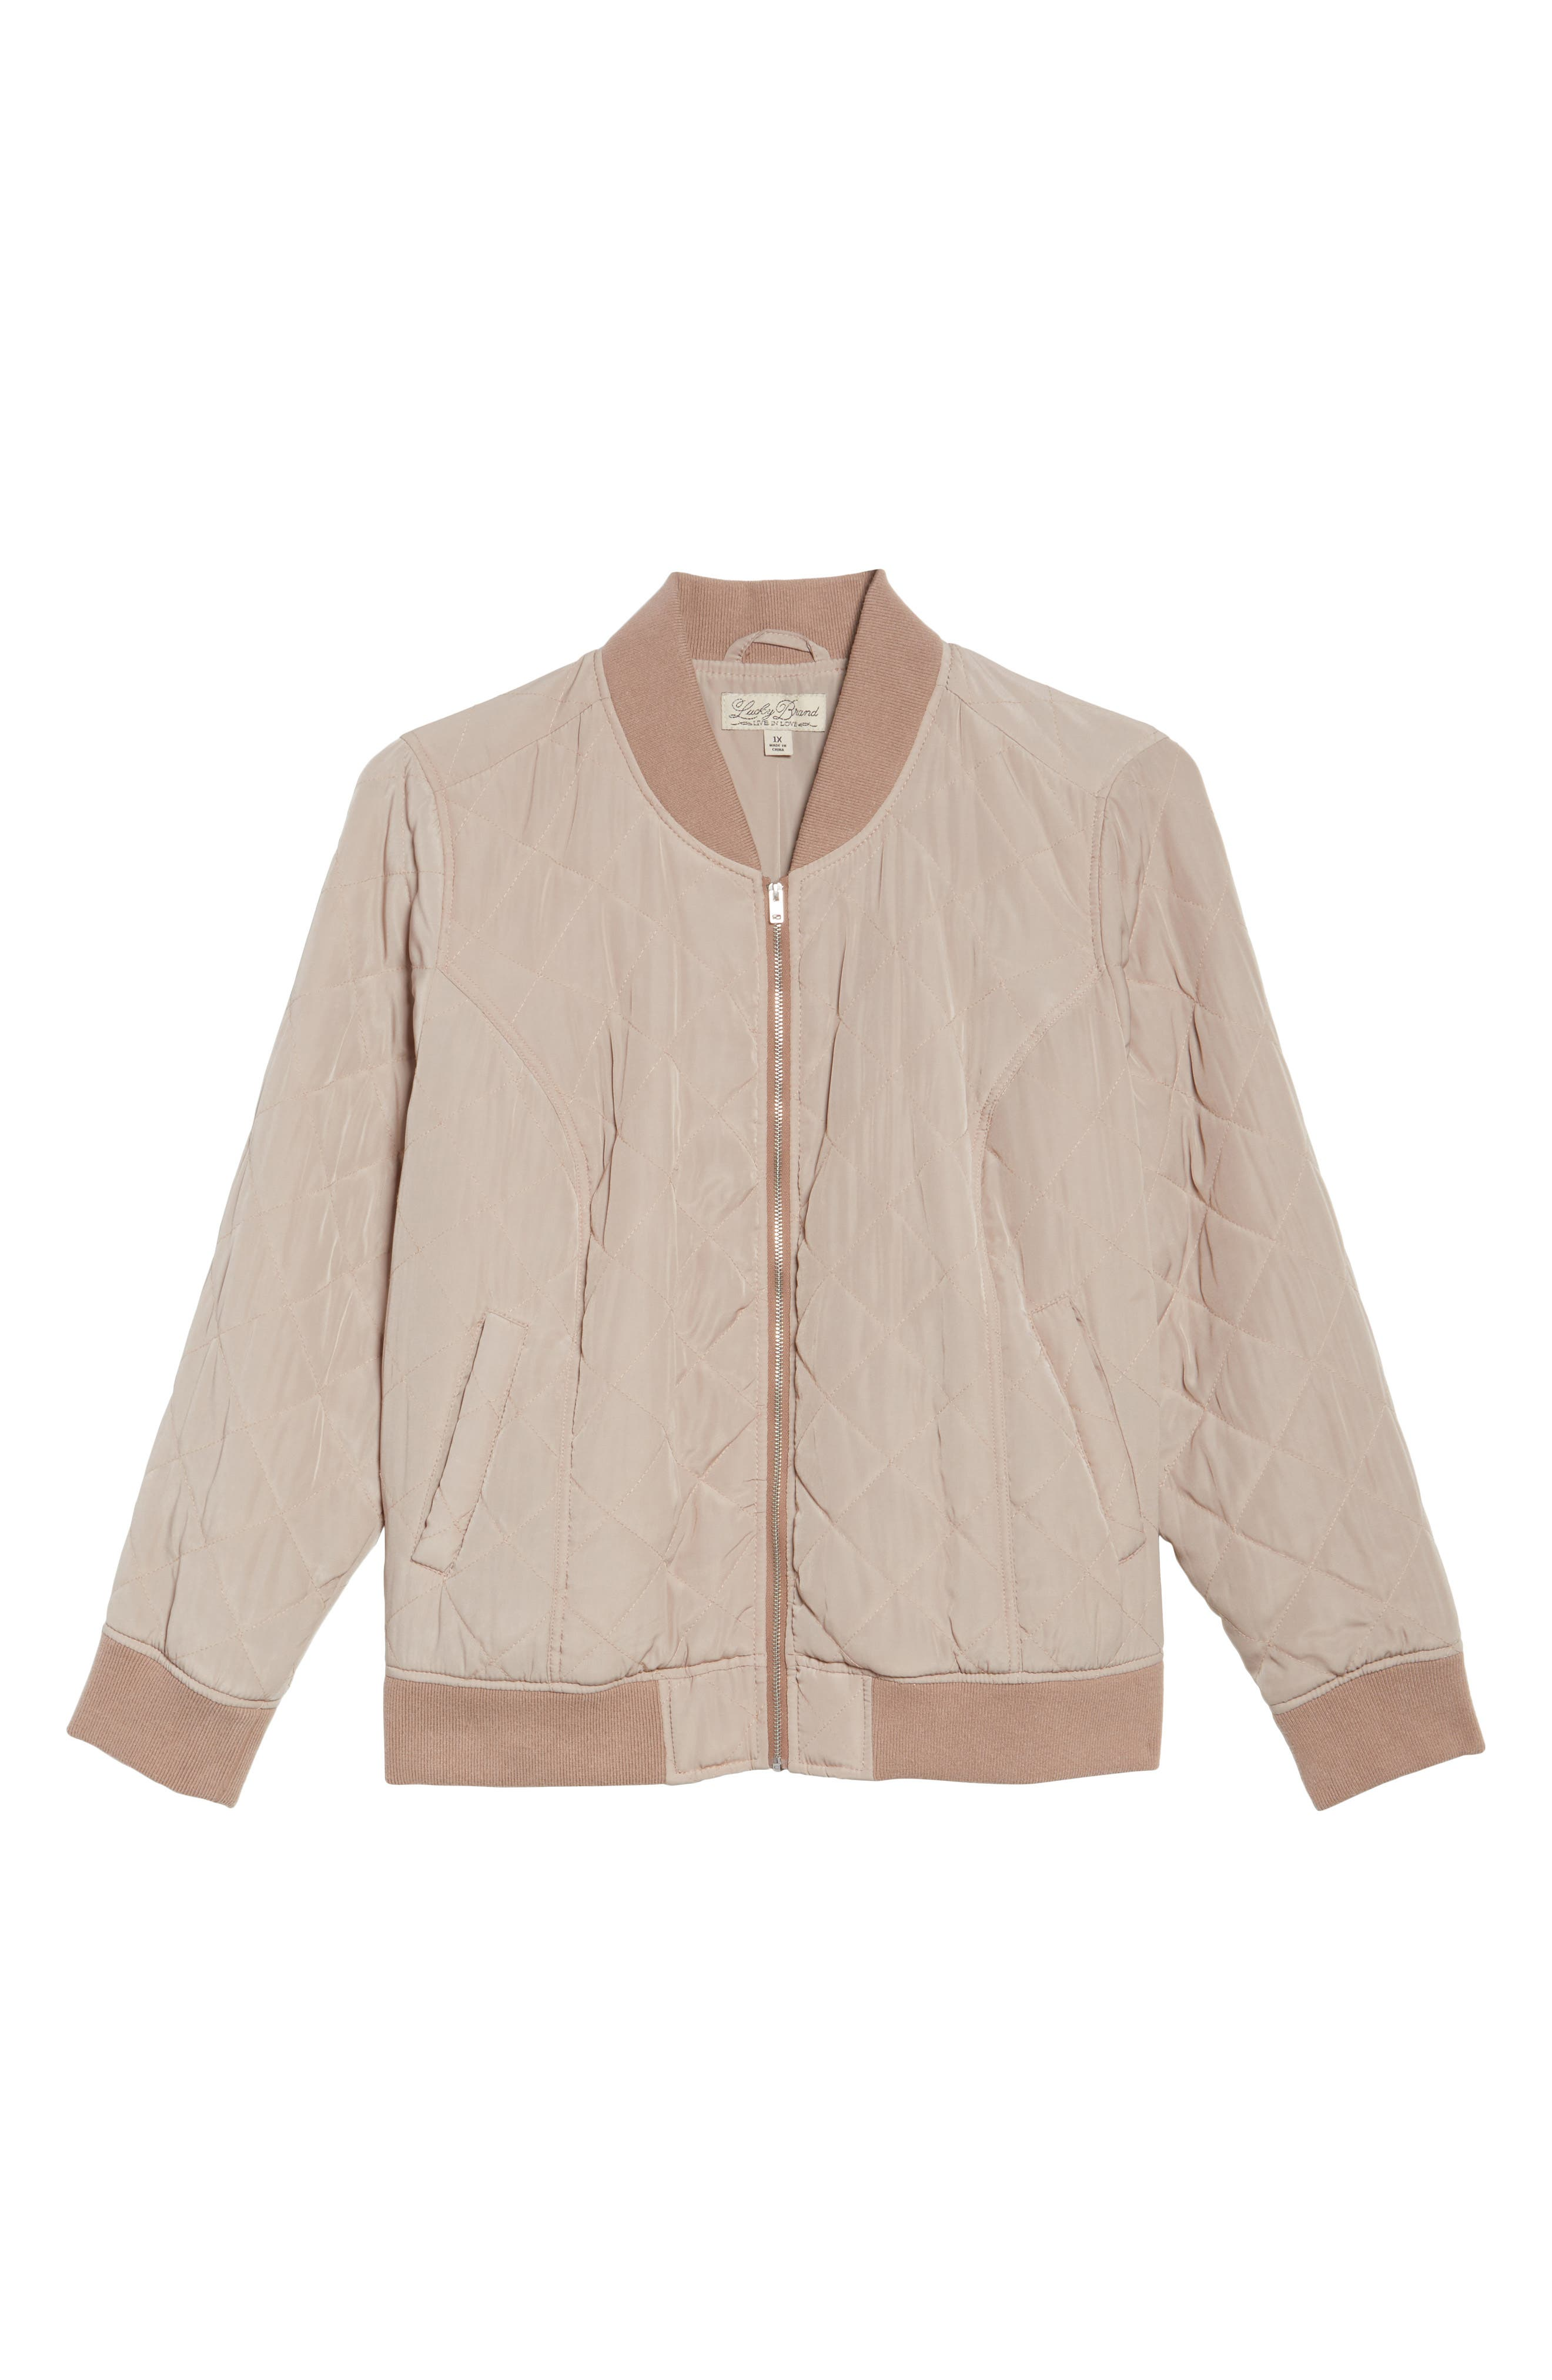 Quilted Bomber Jacket,                             Alternate thumbnail 5, color,                             690